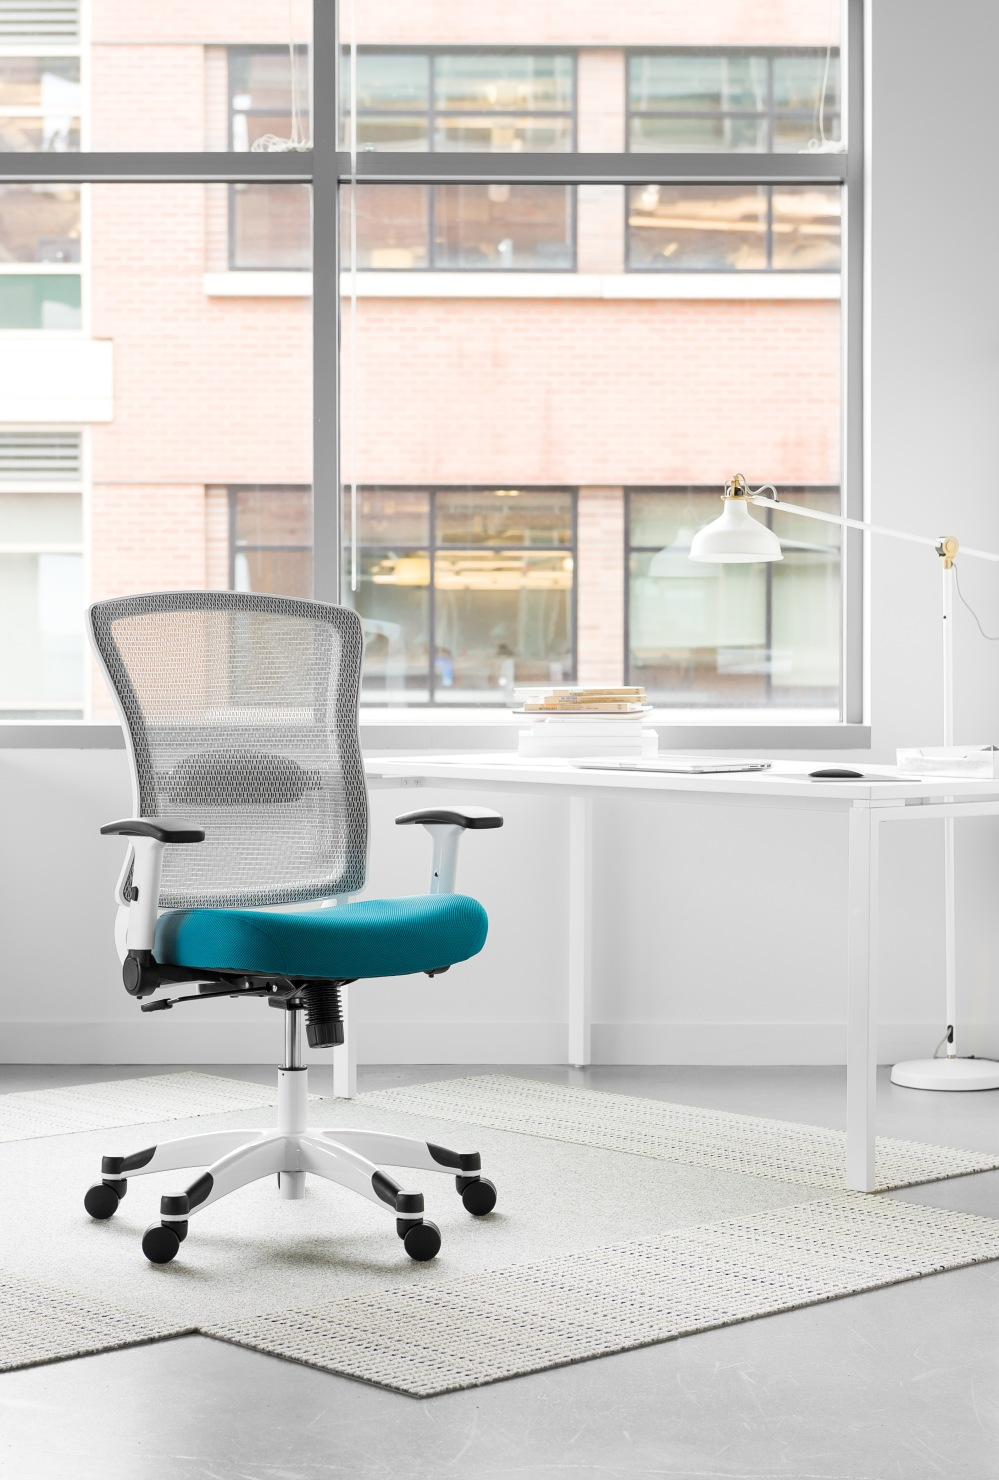 This intelligently designed chair provides both comfort and support to your body and mind with an amazingly strong yet lightweight breathable mesh seat and back that conforms to your body's unique contours.